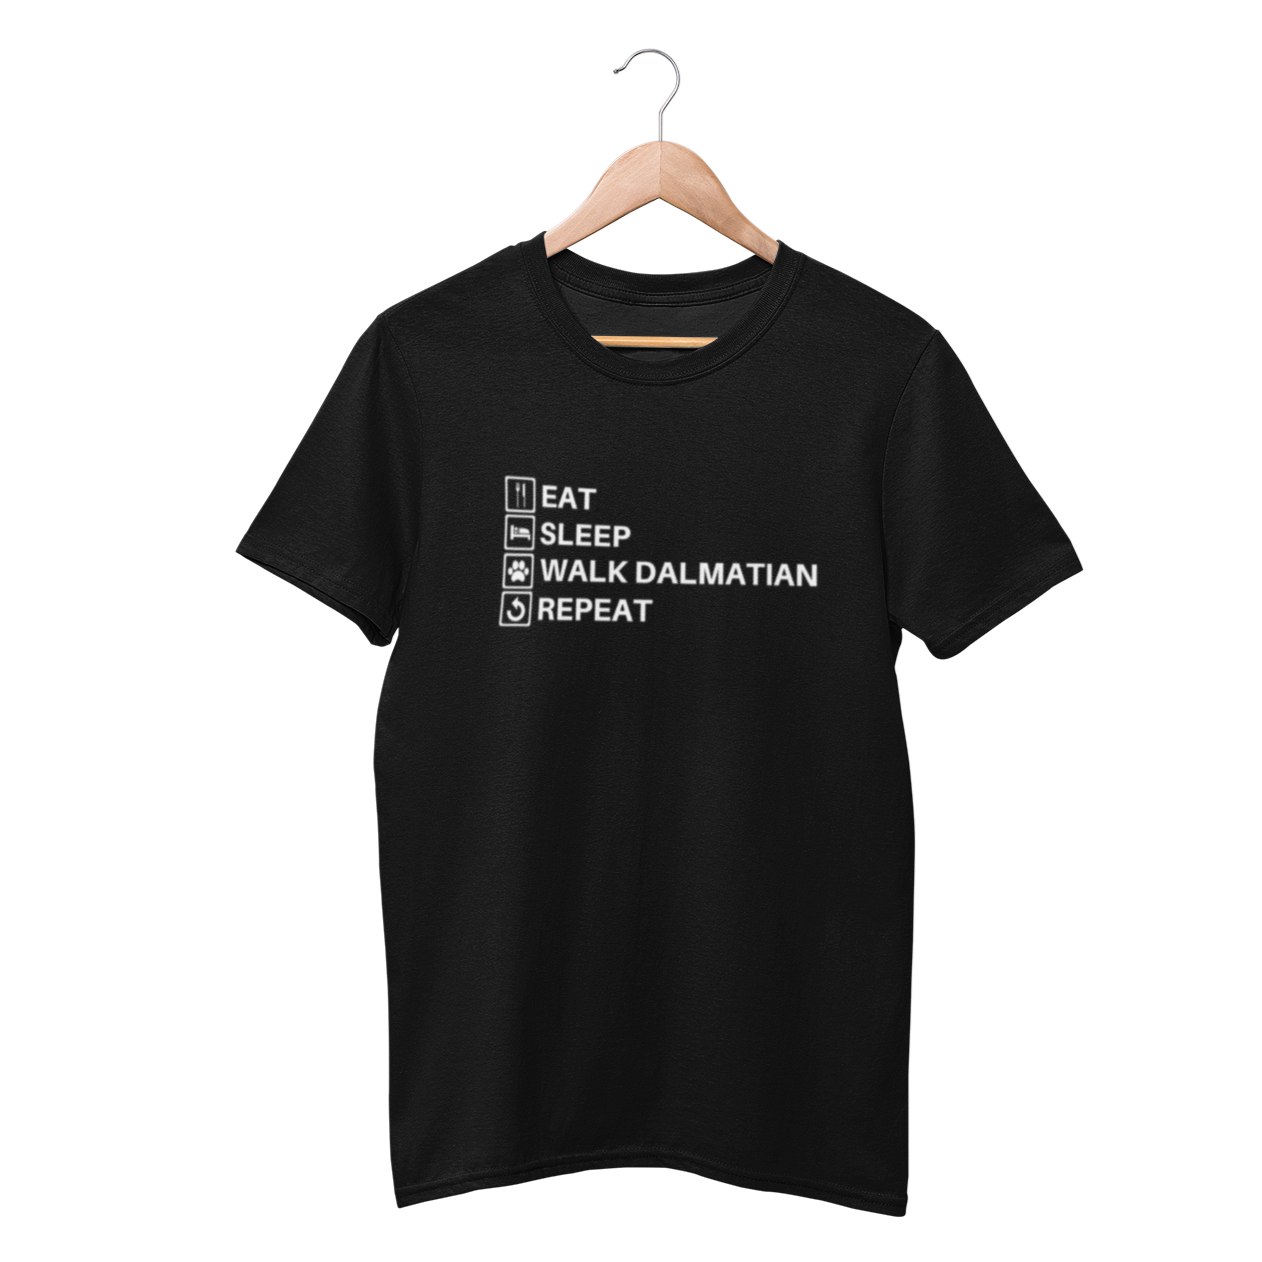 Eat, Sleep, Walk Dalmatian & Repeat Shirt - Funny Labrador Cute Shirt Labradors Labs